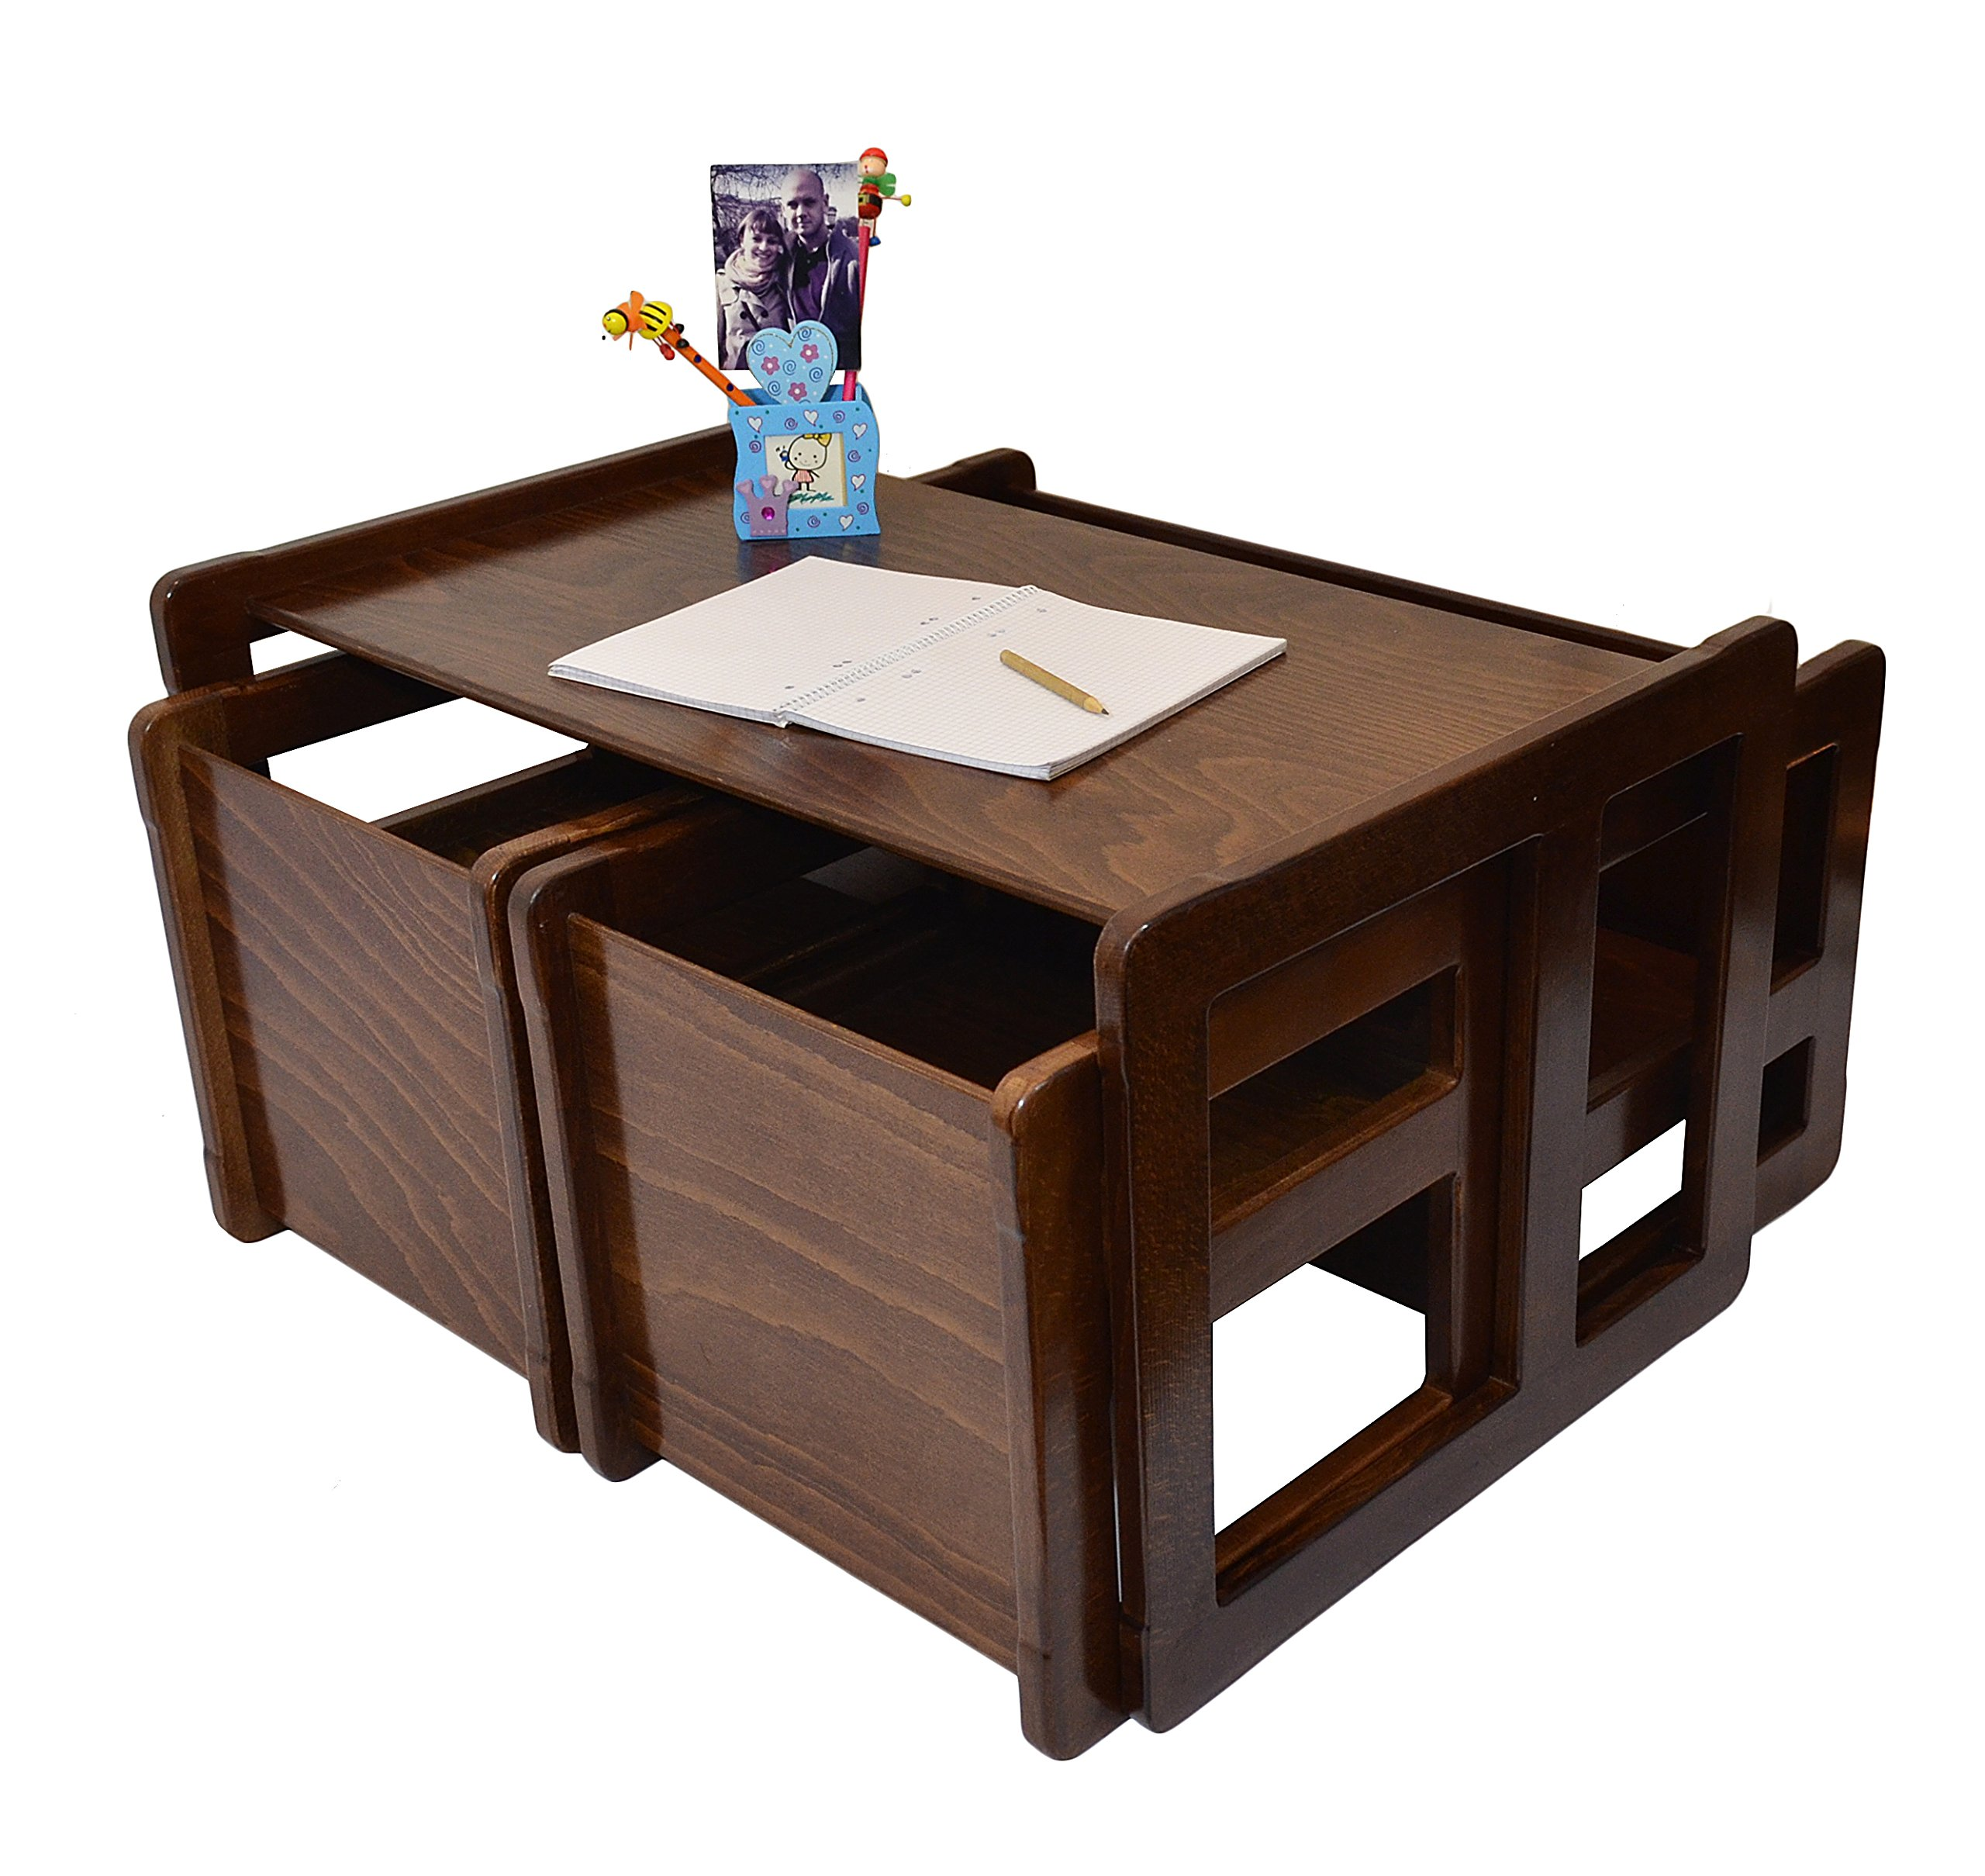 3 in 1 Childrens Multifunctional Furniture Set of 4, Two Small Chairs or Tables and One Small Bench or Table and One Large Bench or Table Beech Wood, Dark Stained by Obique Ltd (Image #2)